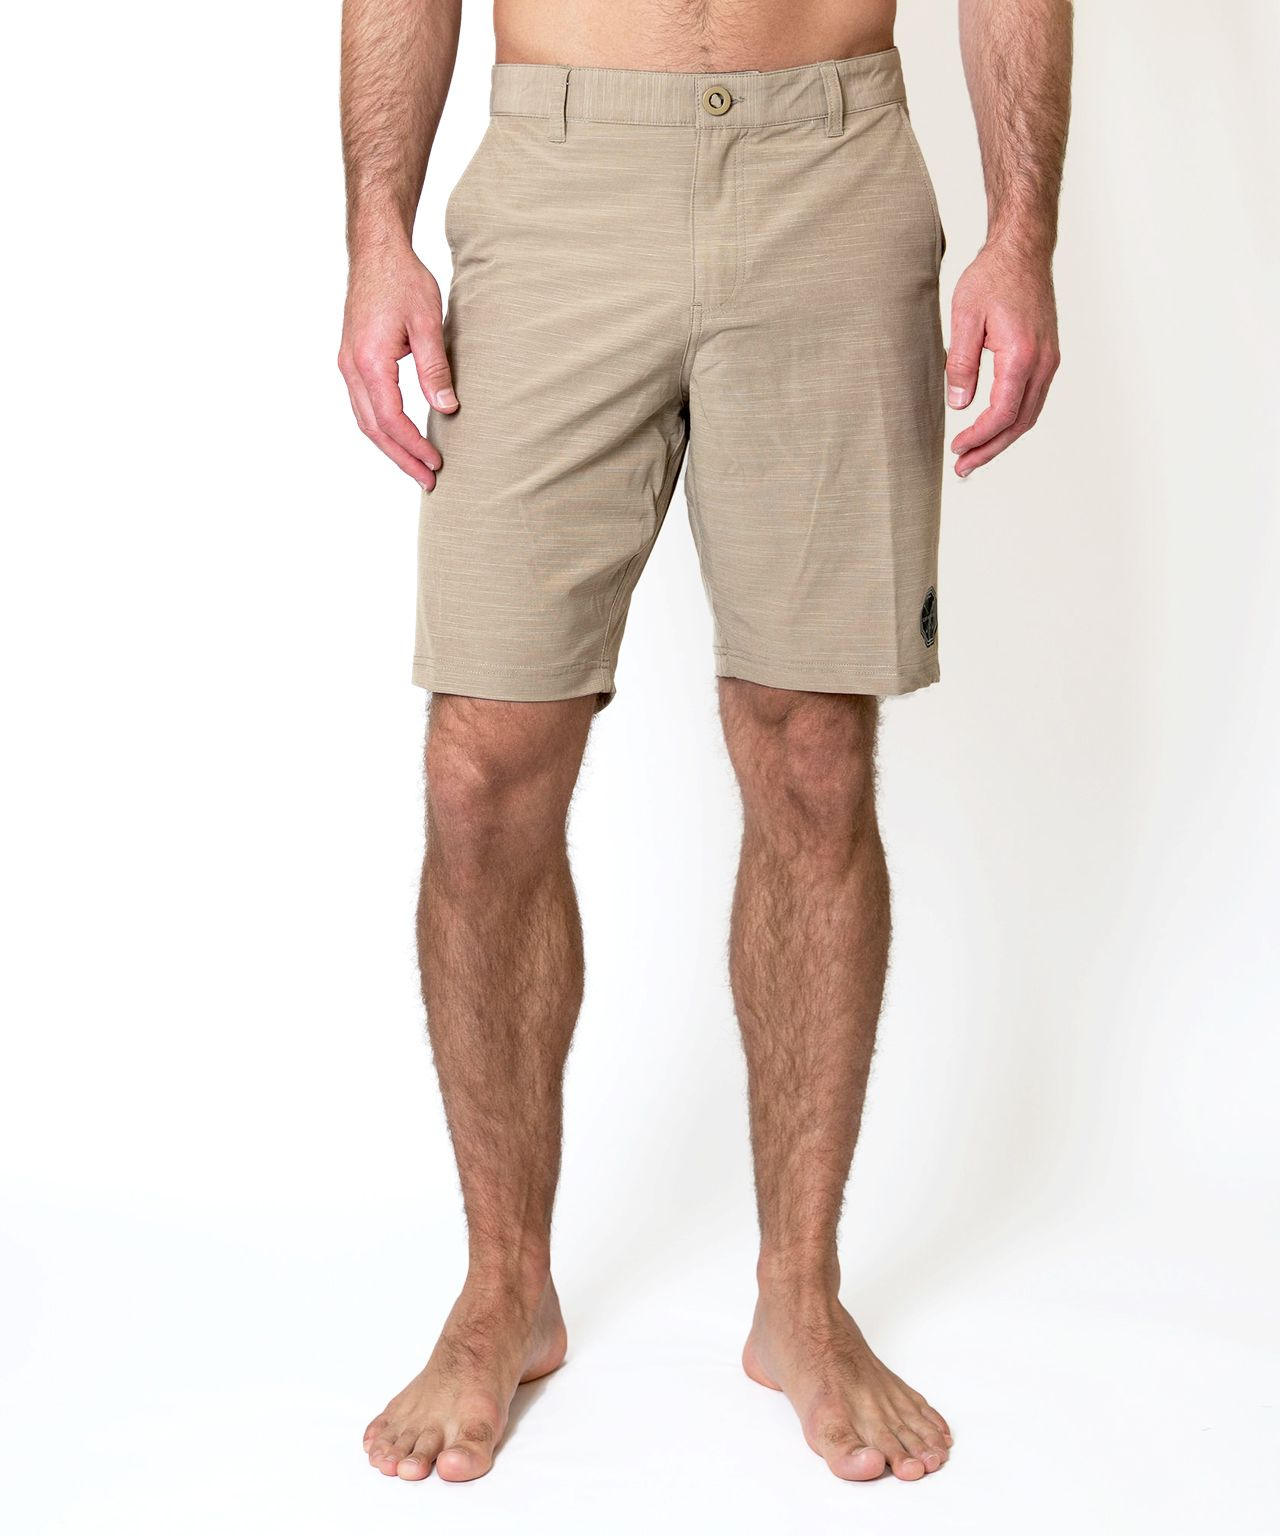 Poipu Walk shorts